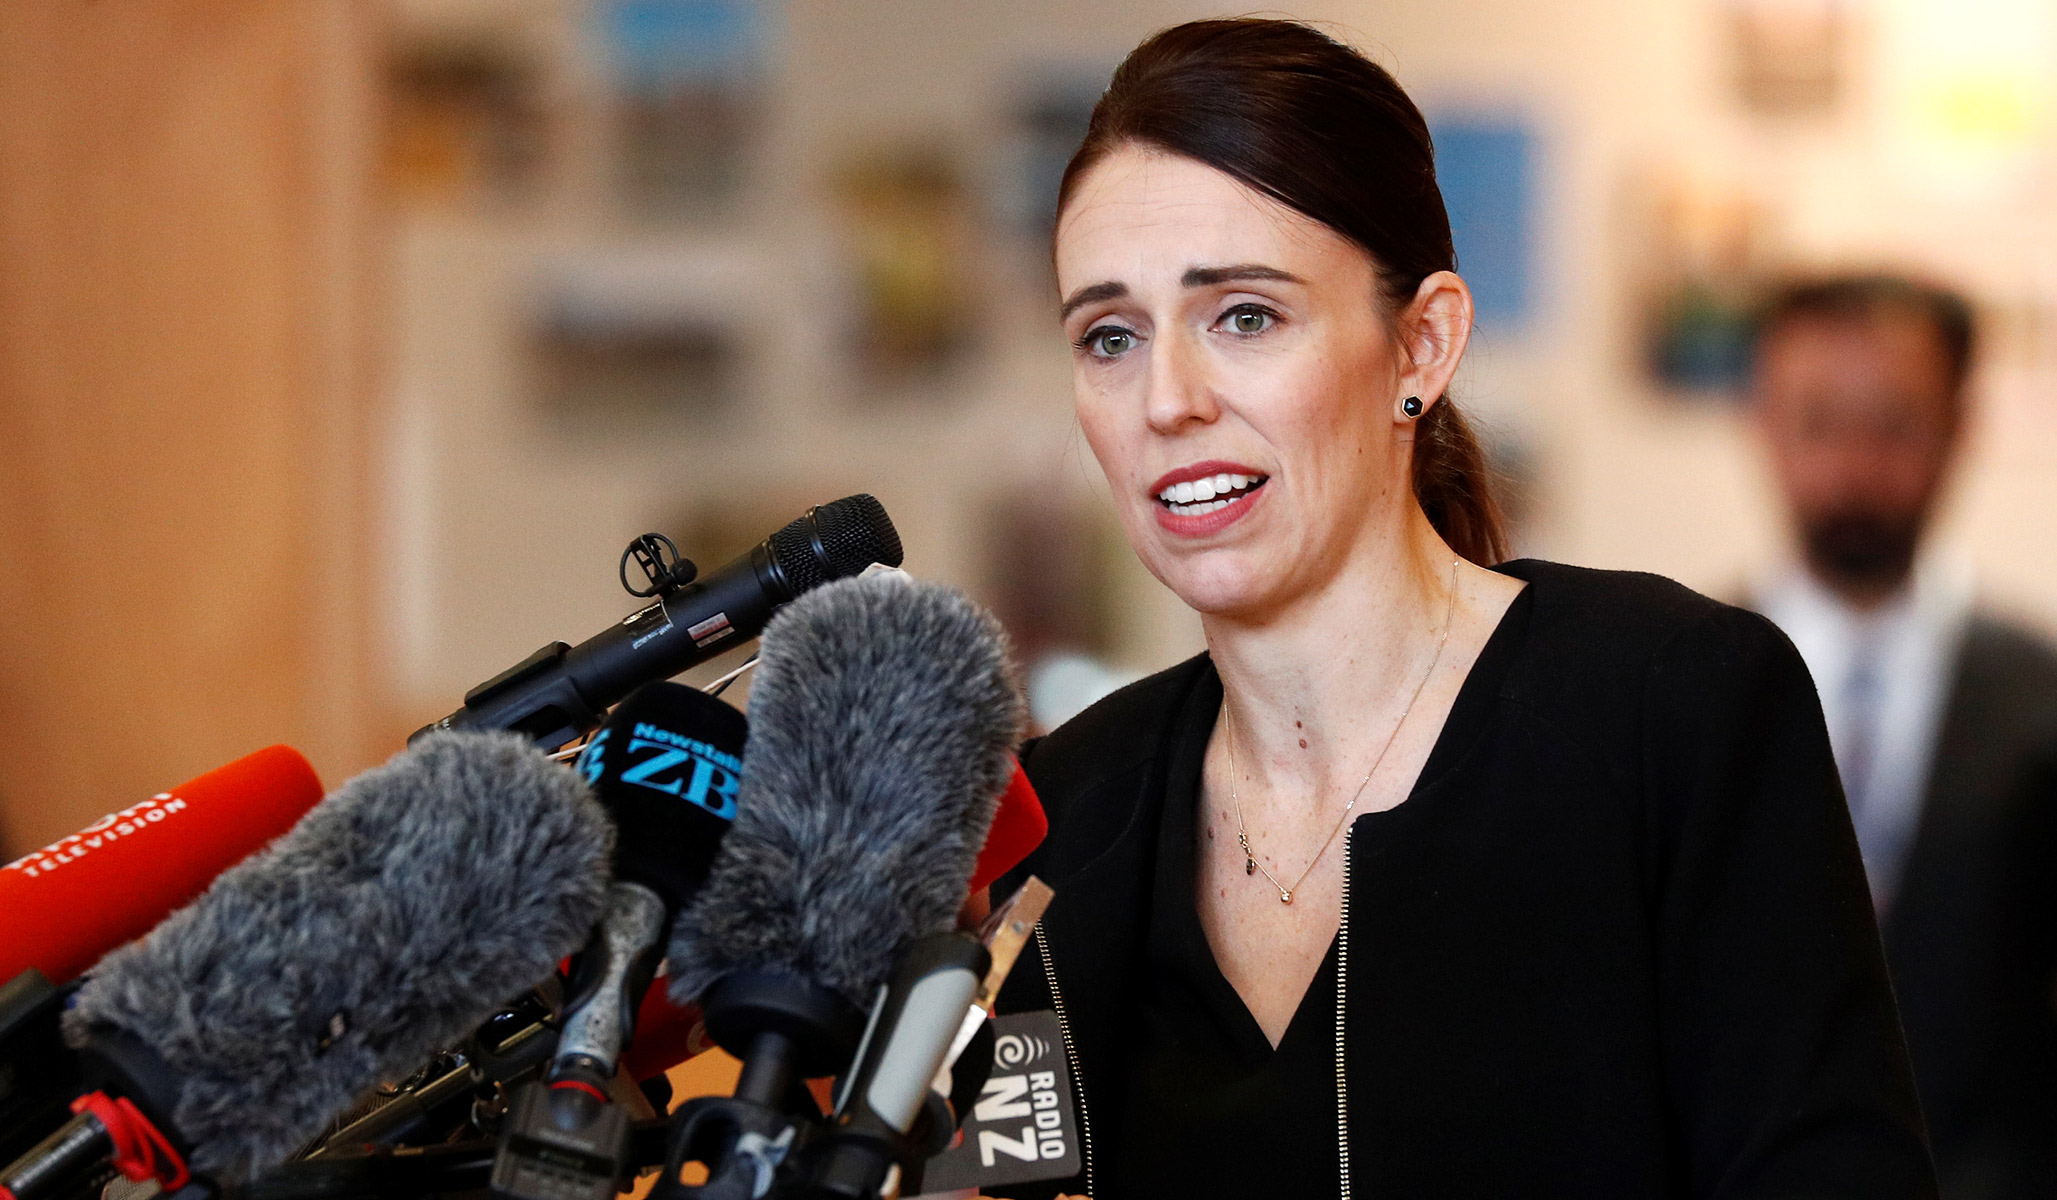 nationalreview.com - Kevin D. Williamson - New Zealand Gun Law Changes: Demagoguery, Not Leadership